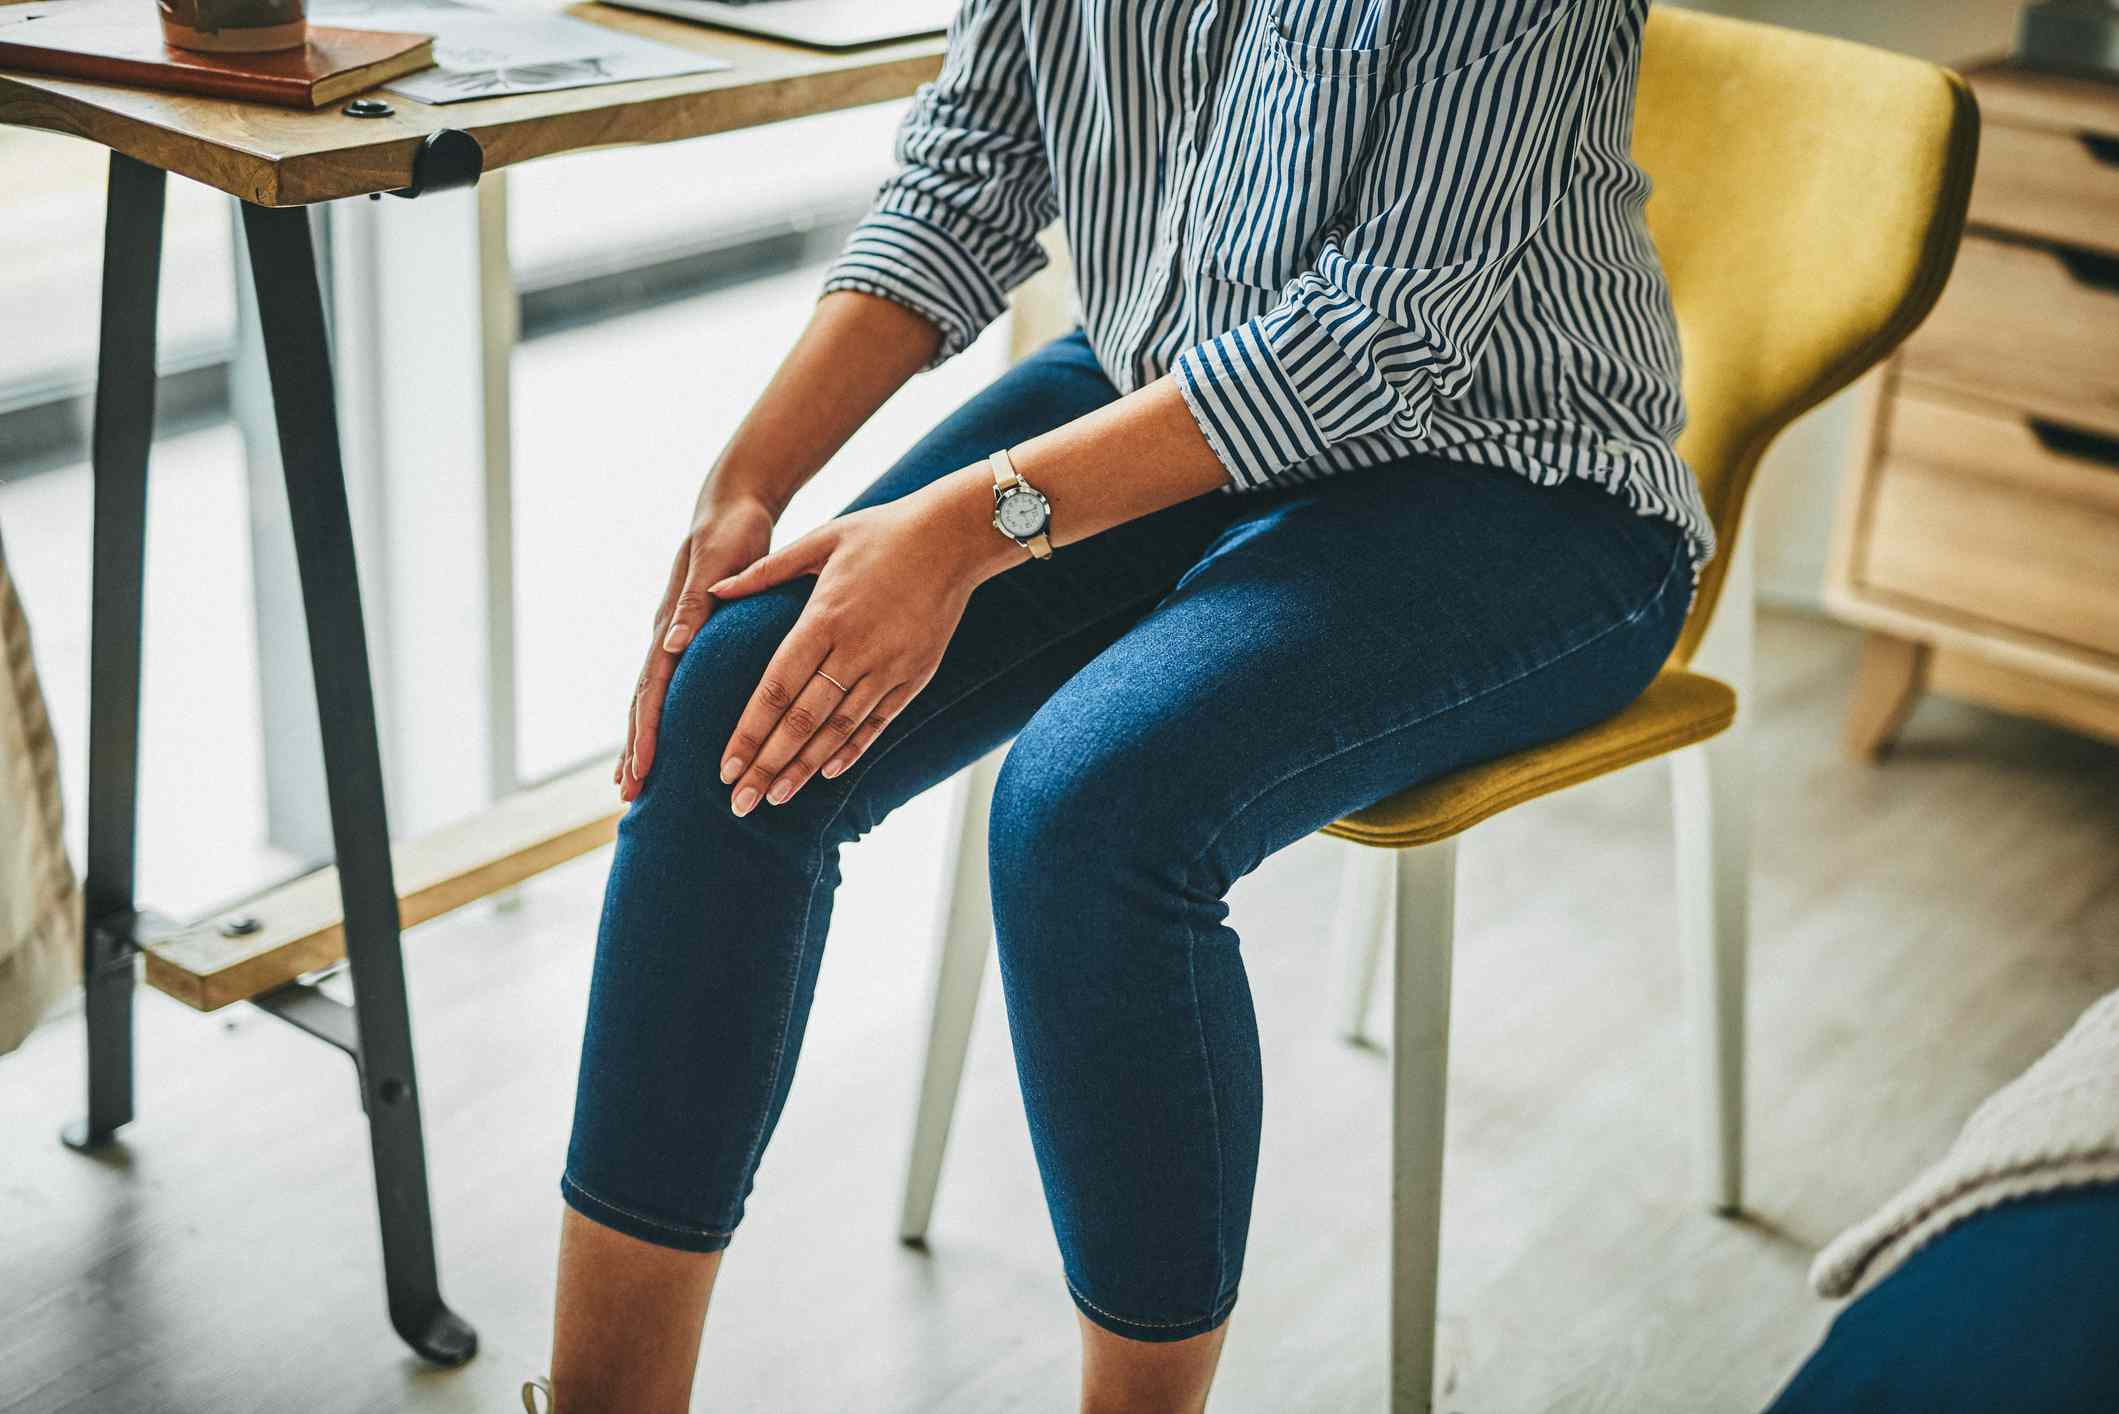 Prolonged periods of sitting can cause stiffness to your joints